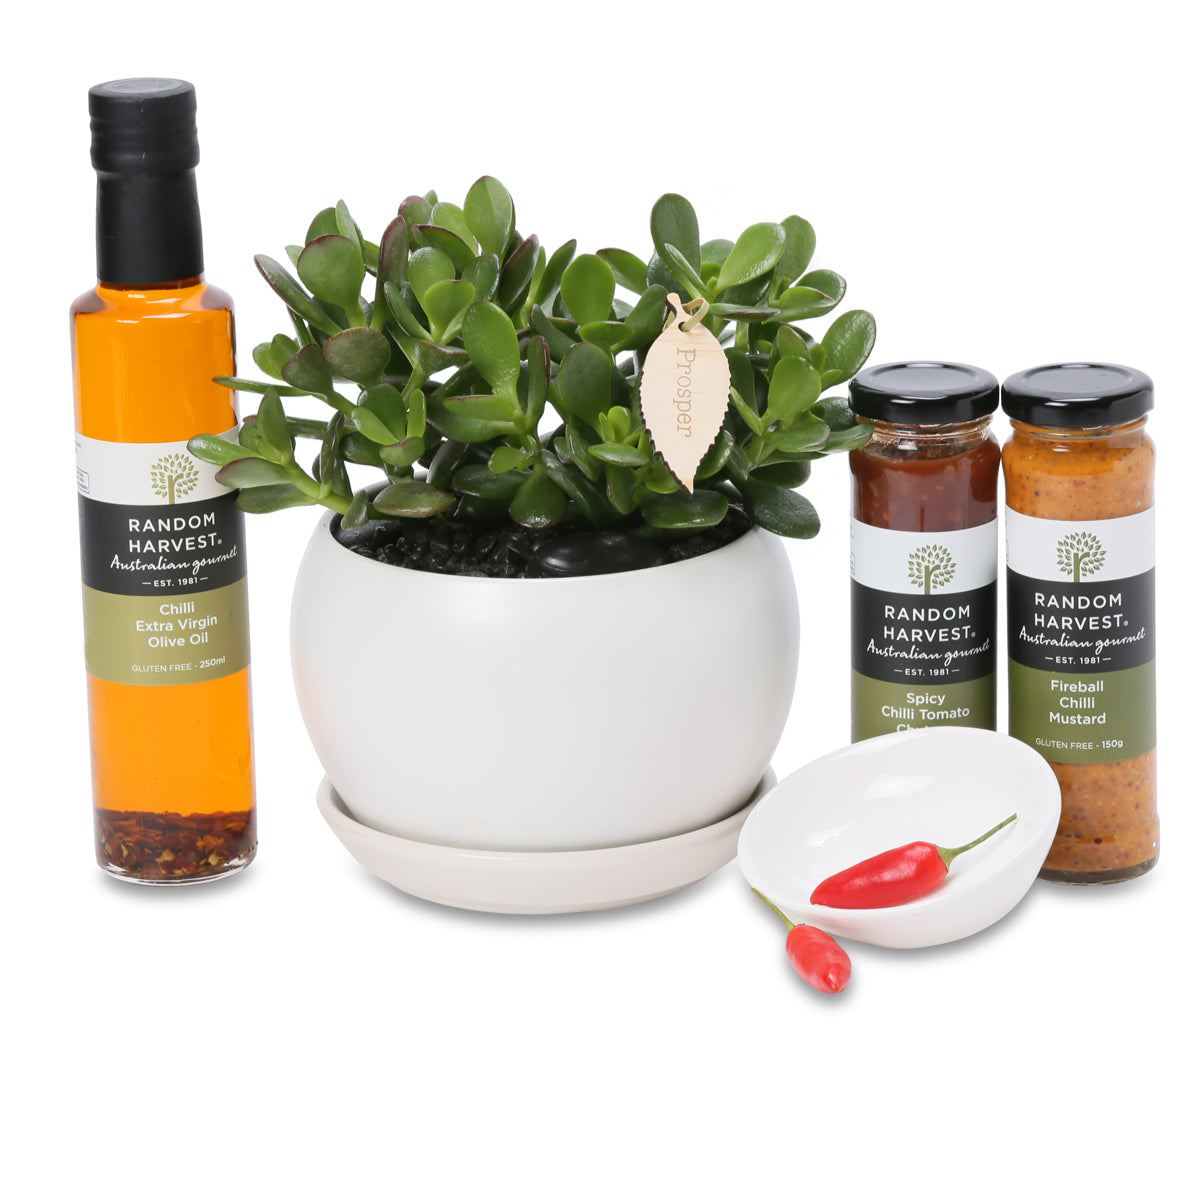 Lucky Moneytree gourmet gift